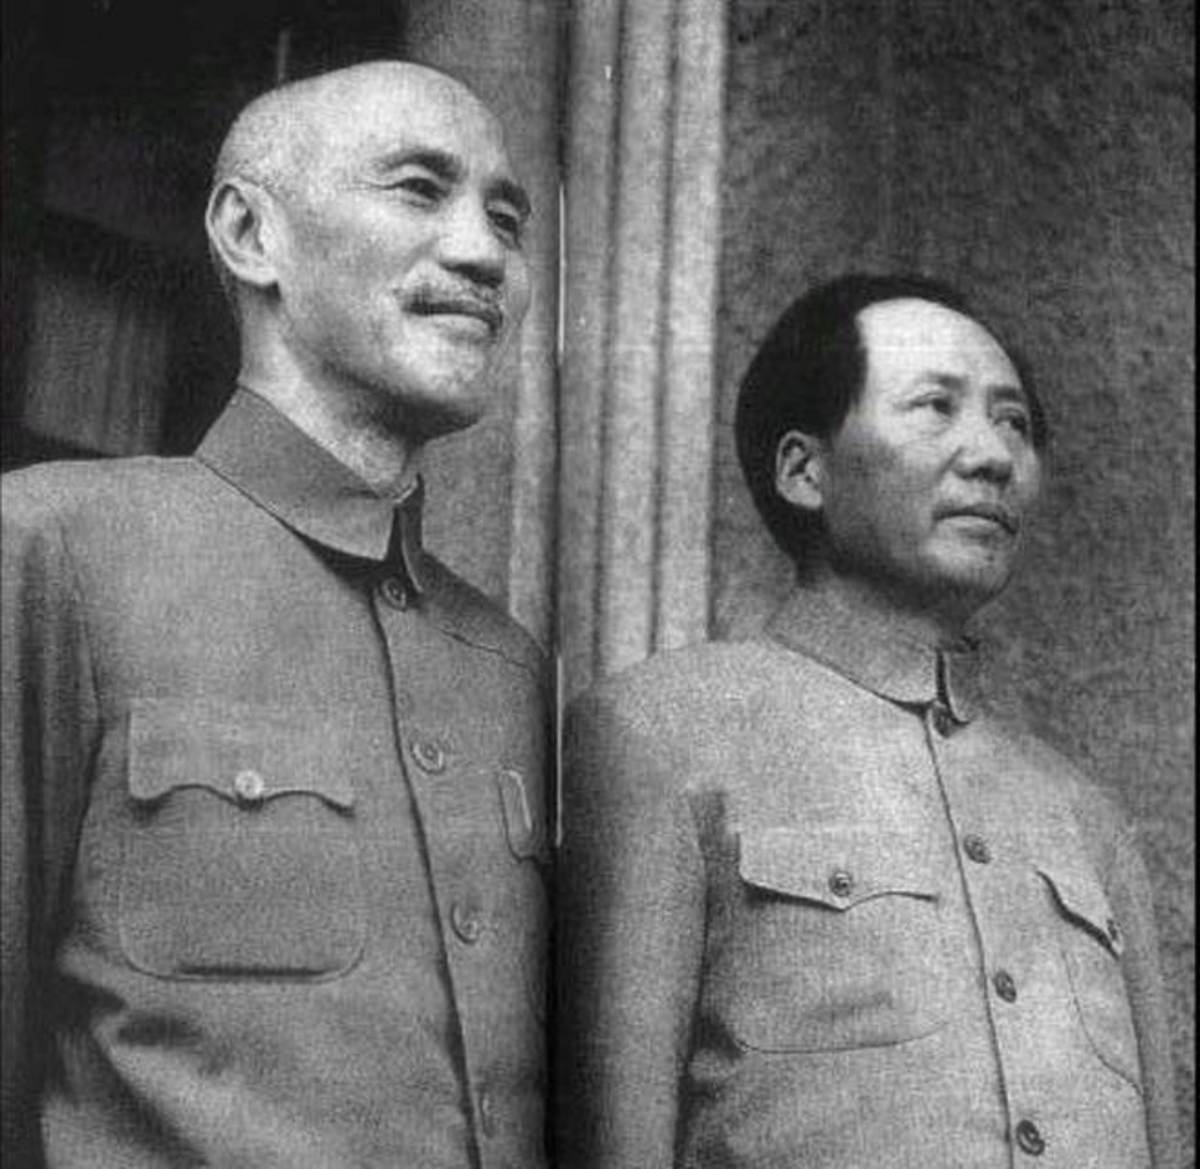 Photo of Chiang Kai-shek (left) and Mao Zedong (right); the two major leaders of the Chinese Civil War.